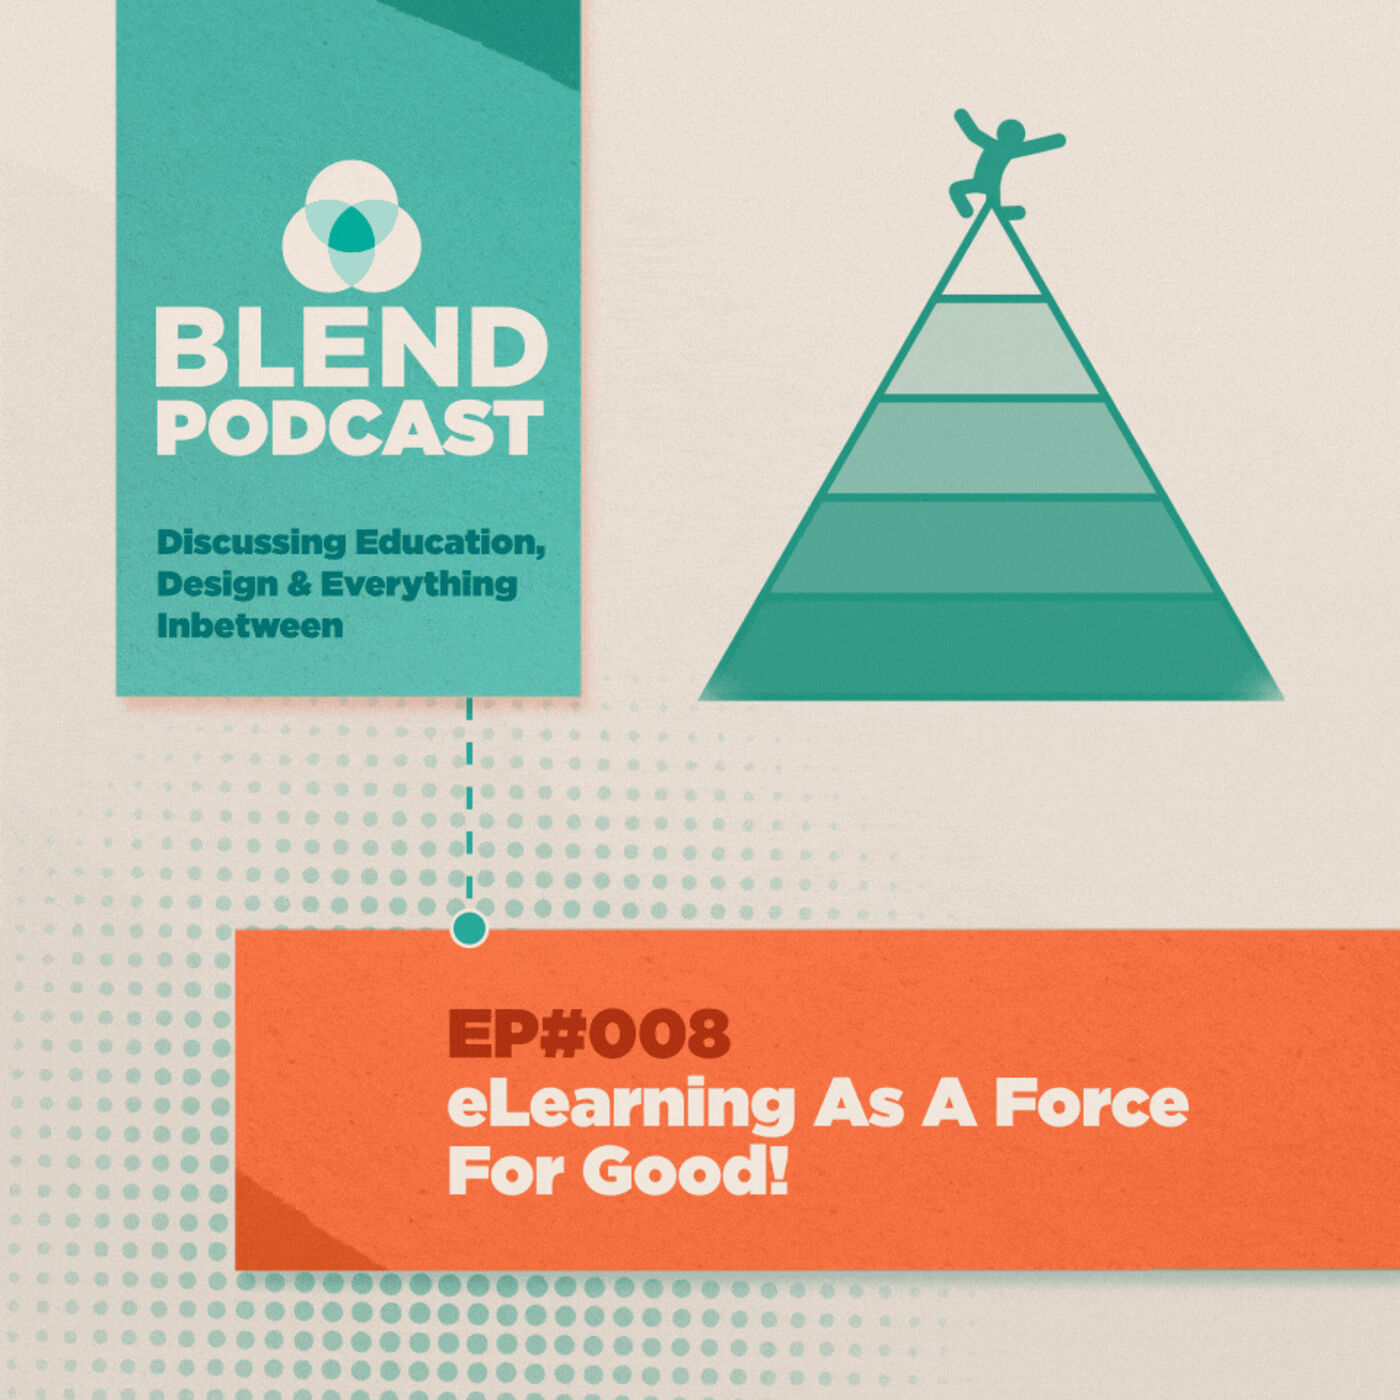 #8 E-Learning as a Force for Good!